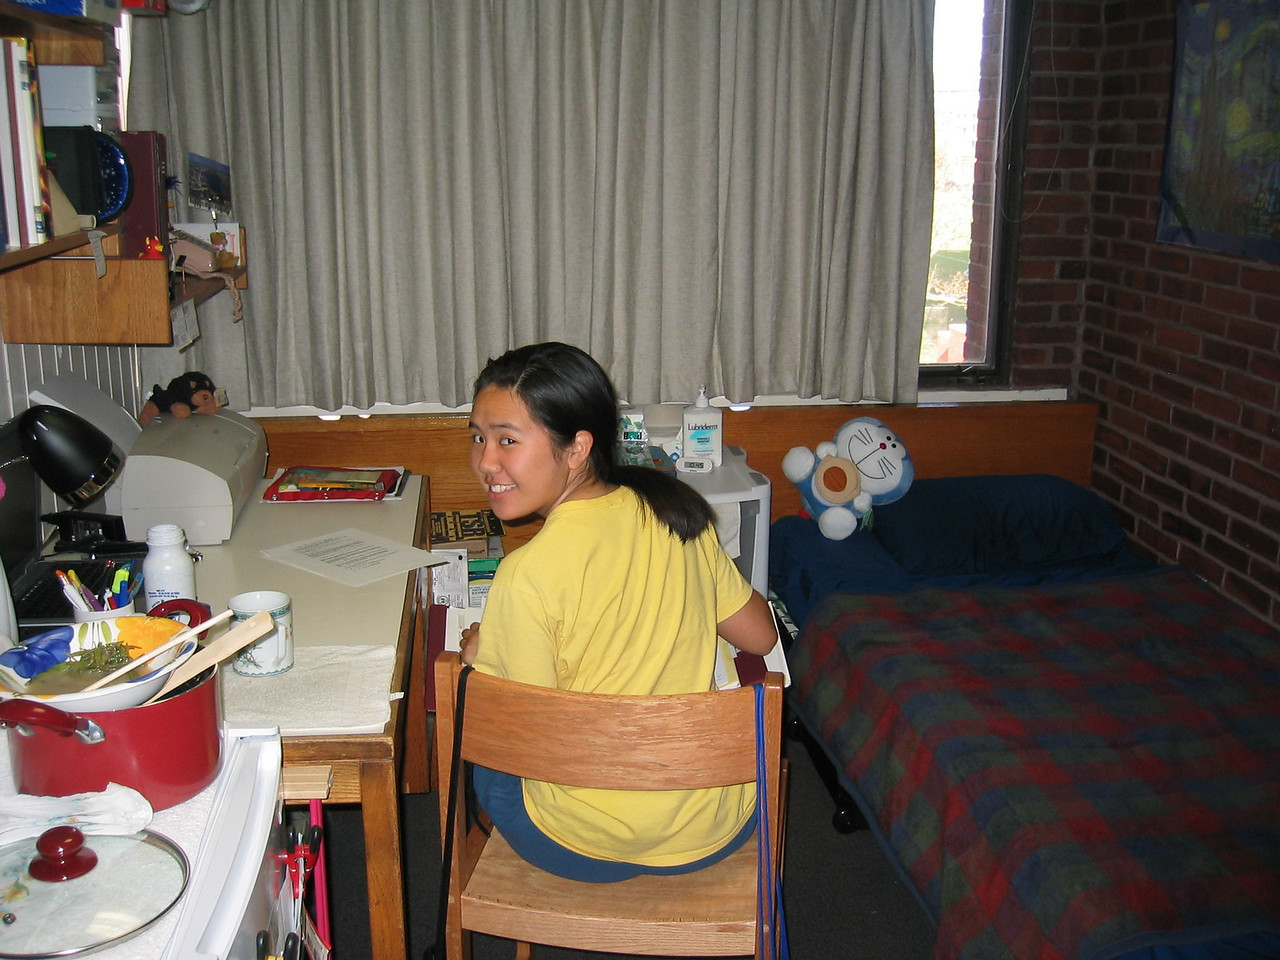 2003 11 07 Friday - Muoy Muoy in her MIT Frosh dorm room studying